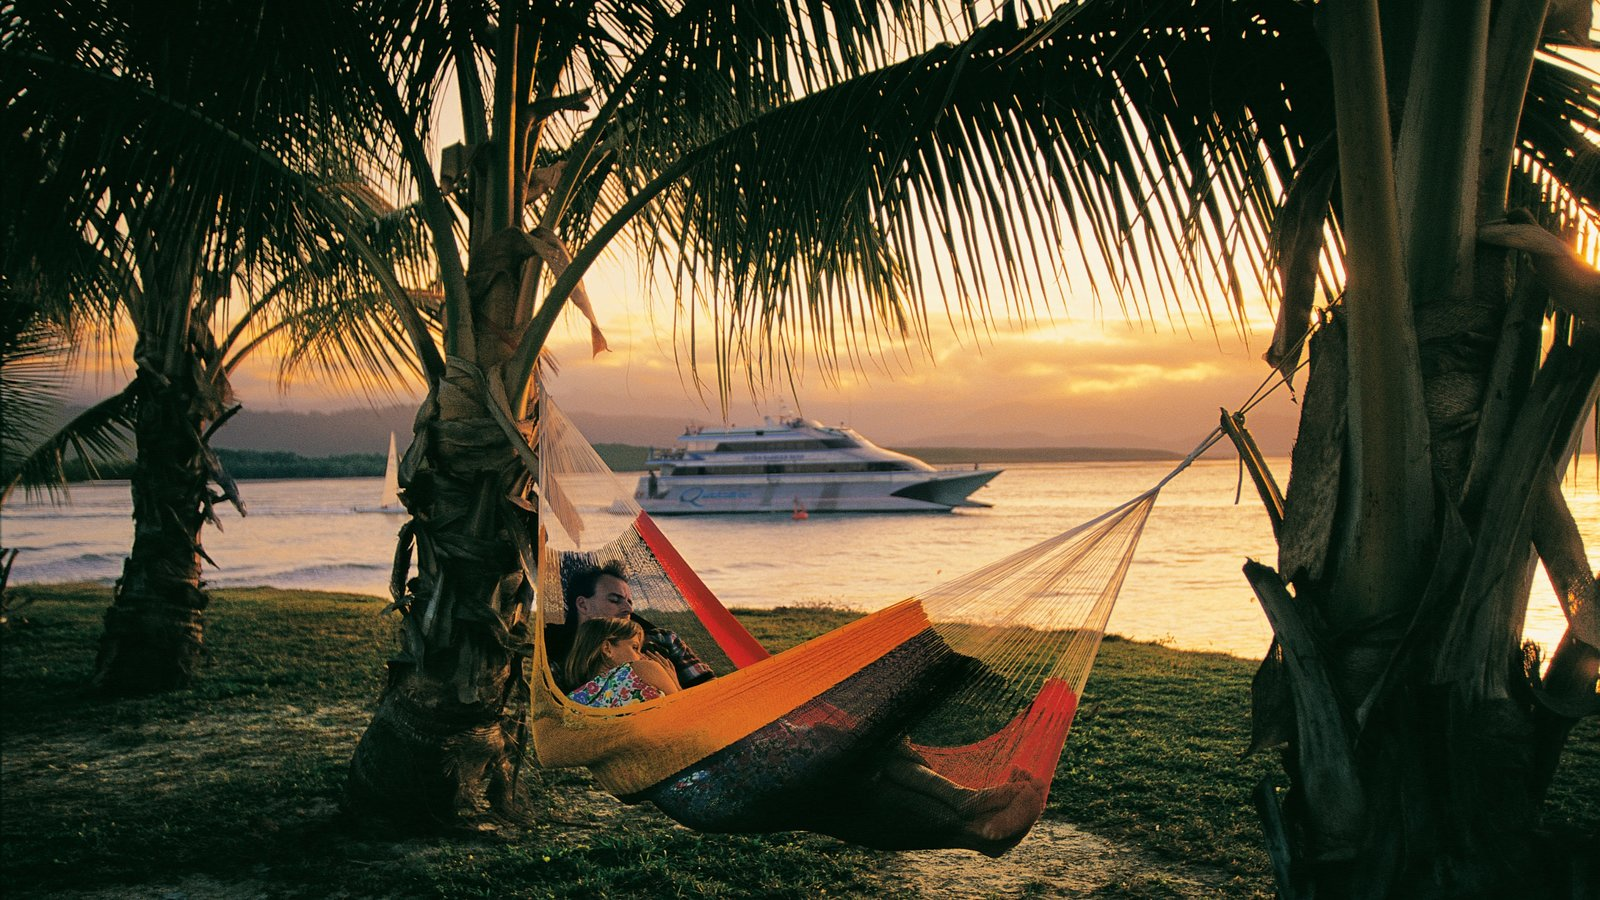 Port Douglas which includes tropical scenes, a sunset and boating